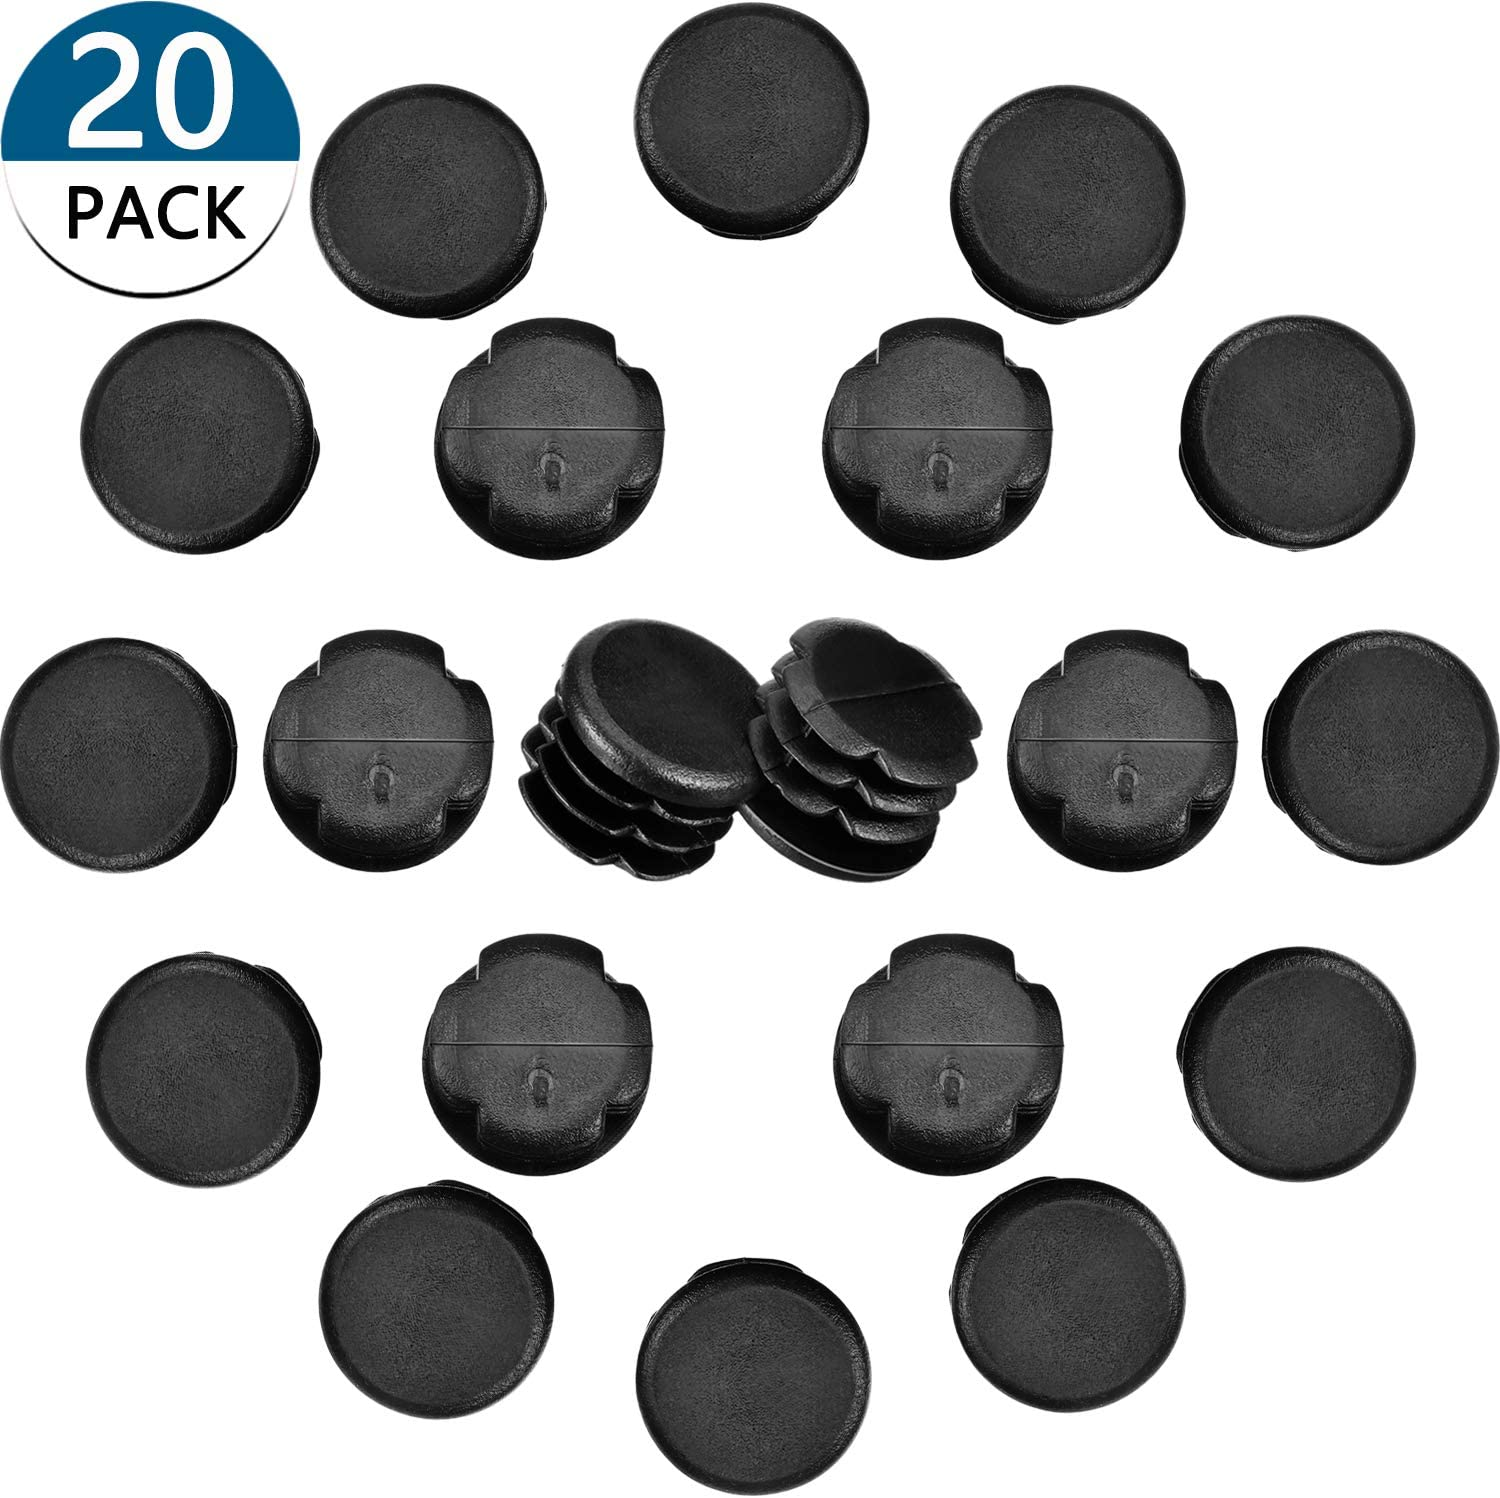 20 Pieces 1 Inch Round Plastic Plug Pipe Tubing End Cap Durable Chair Glide Round Pipe End Cap Cover for Table Chair Furniture Legs Black